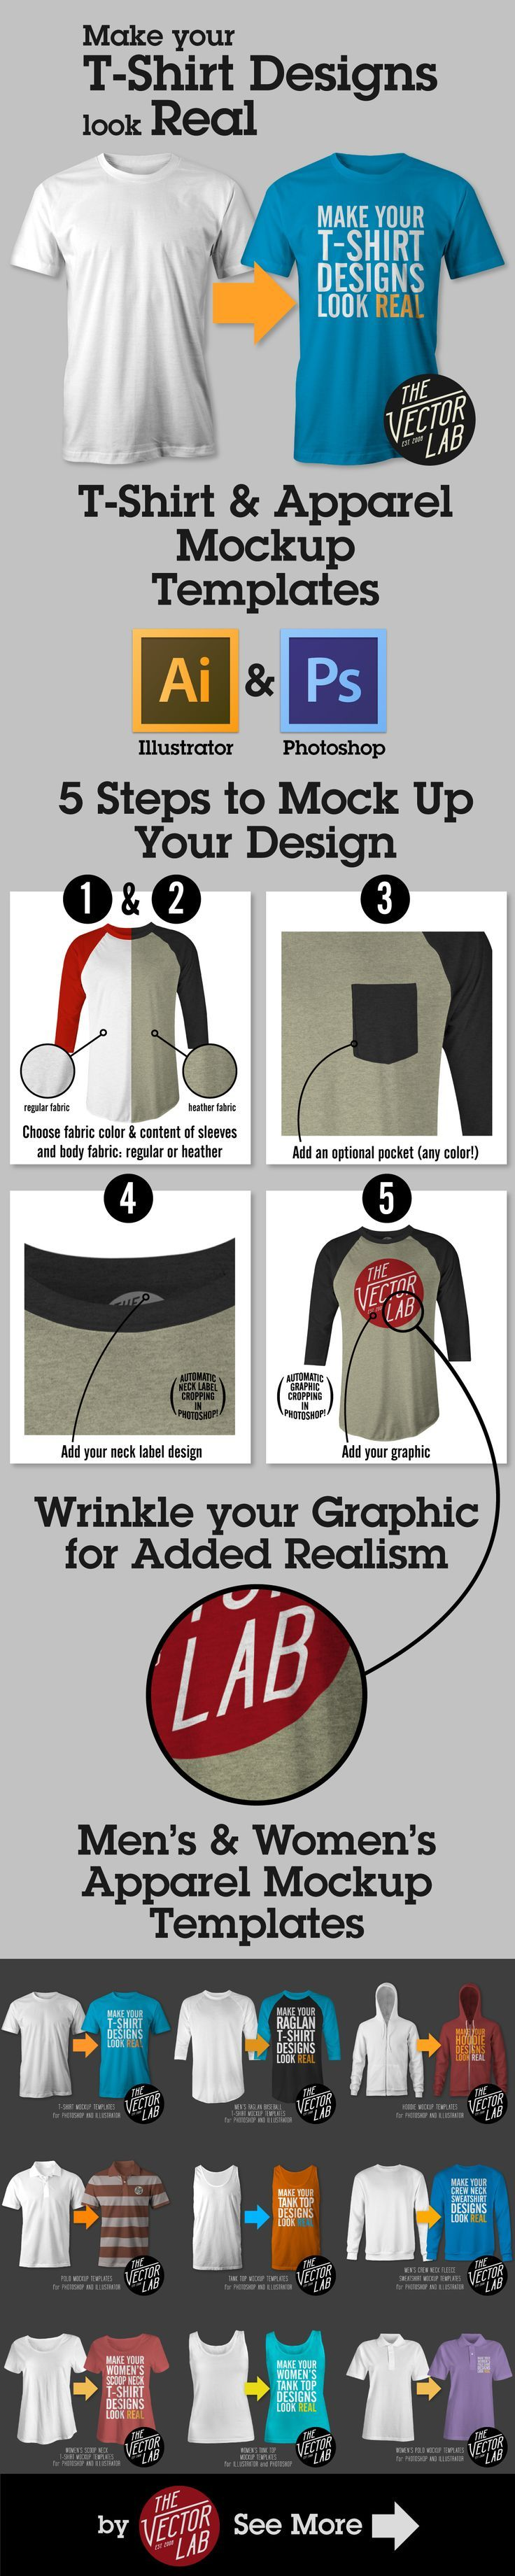 Download T Shirt Mockup Templates For Photoshop And Illustrator Http Thevectorlab Com Collections Mens Apparel Templates Graphic Design Tips Design Design Tutorials